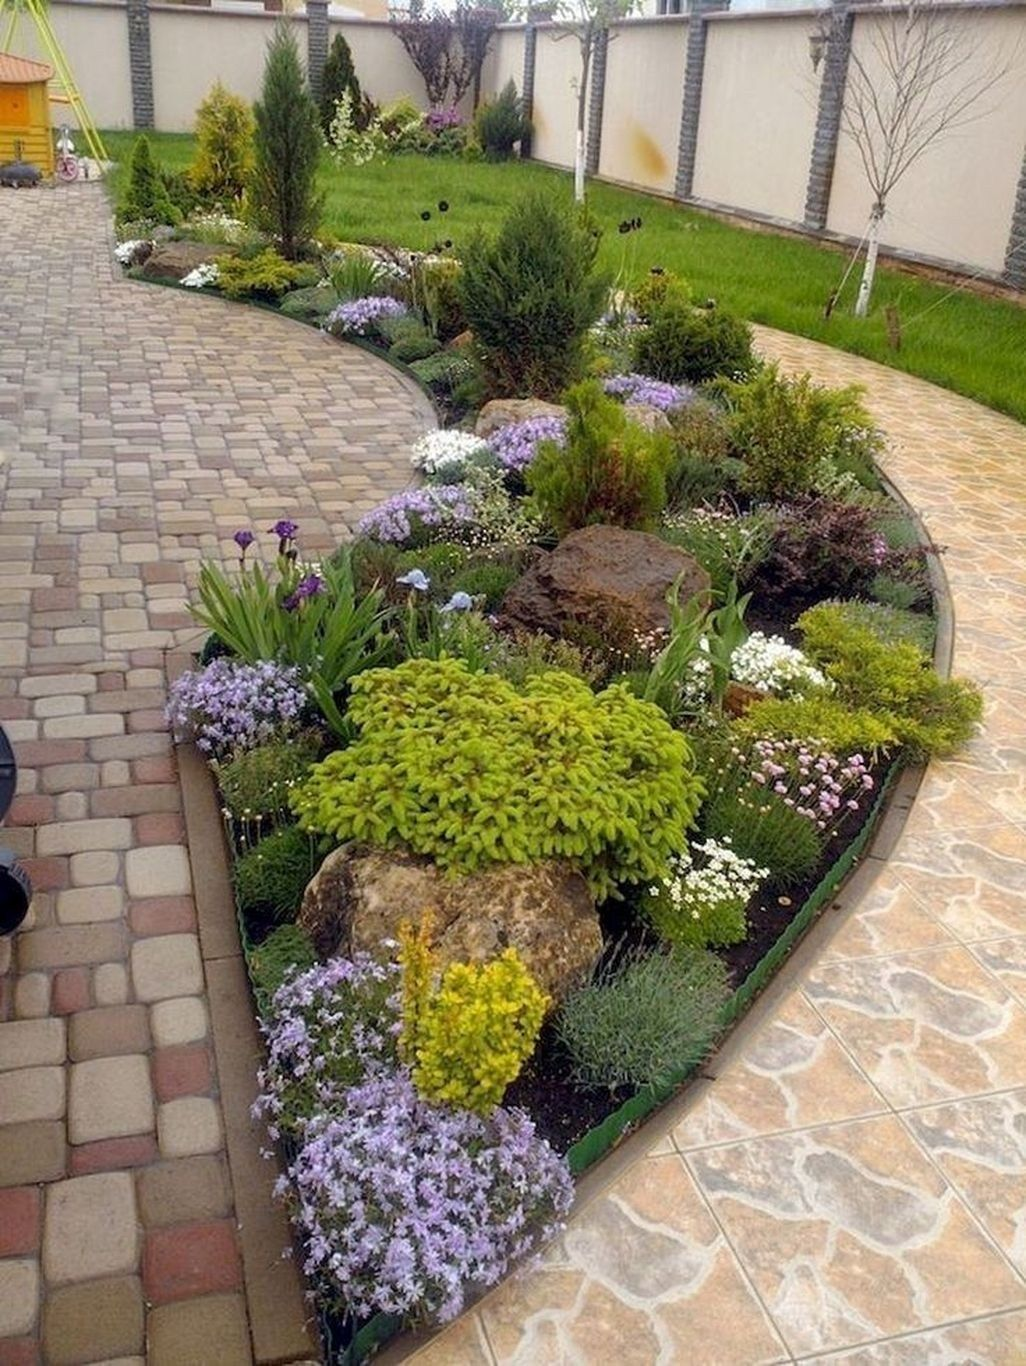 45 Easy And Low Maintenance Front Yard Landscaping Ideas Zyhomy Front Yard Landscaping Design Rock Garden Landscaping Front Yard Garden